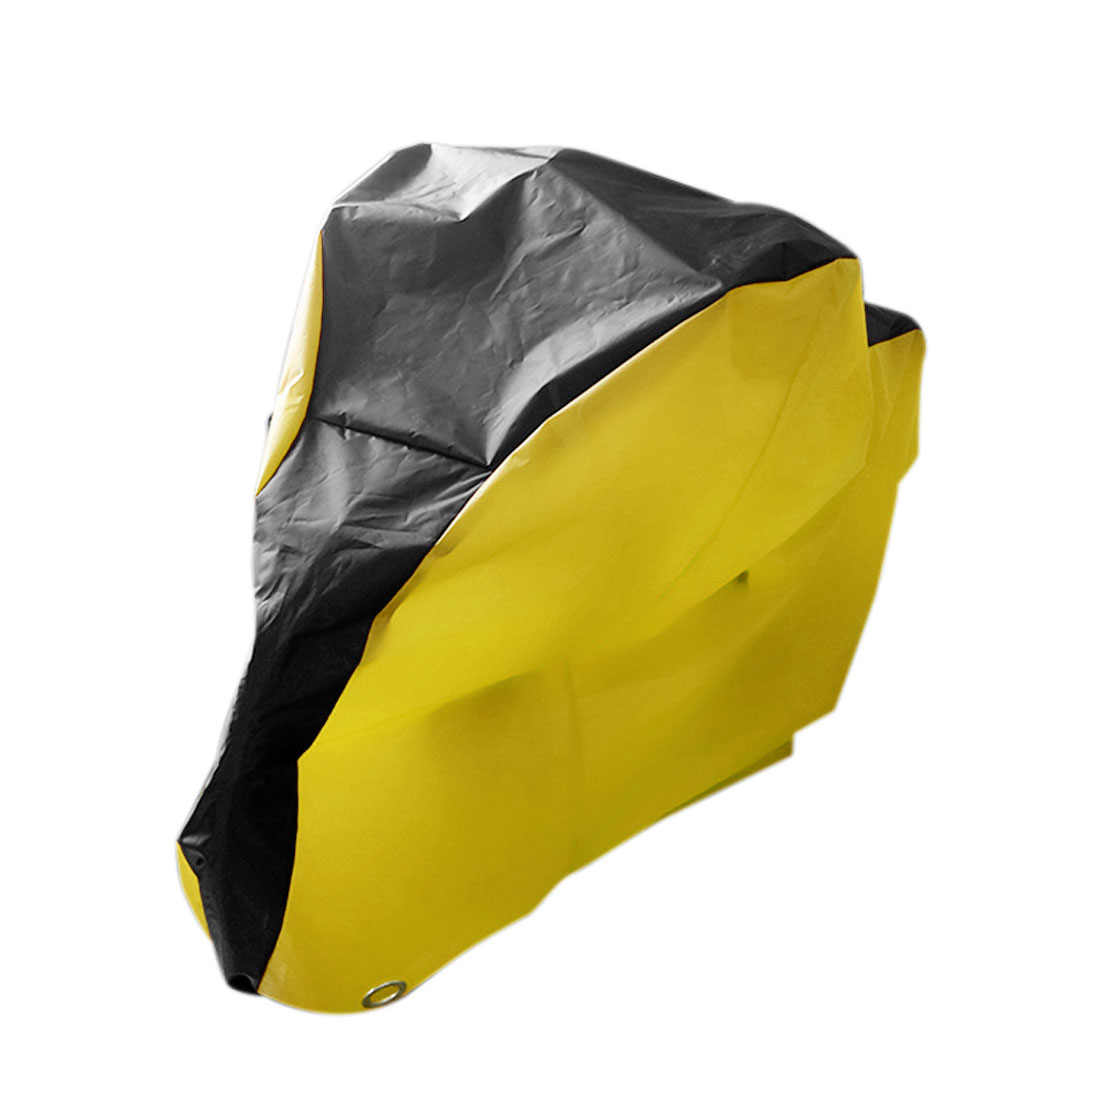 S Yellow Waterproof Rain UV Dust Resistant Protective Cover for Bicycle Bike